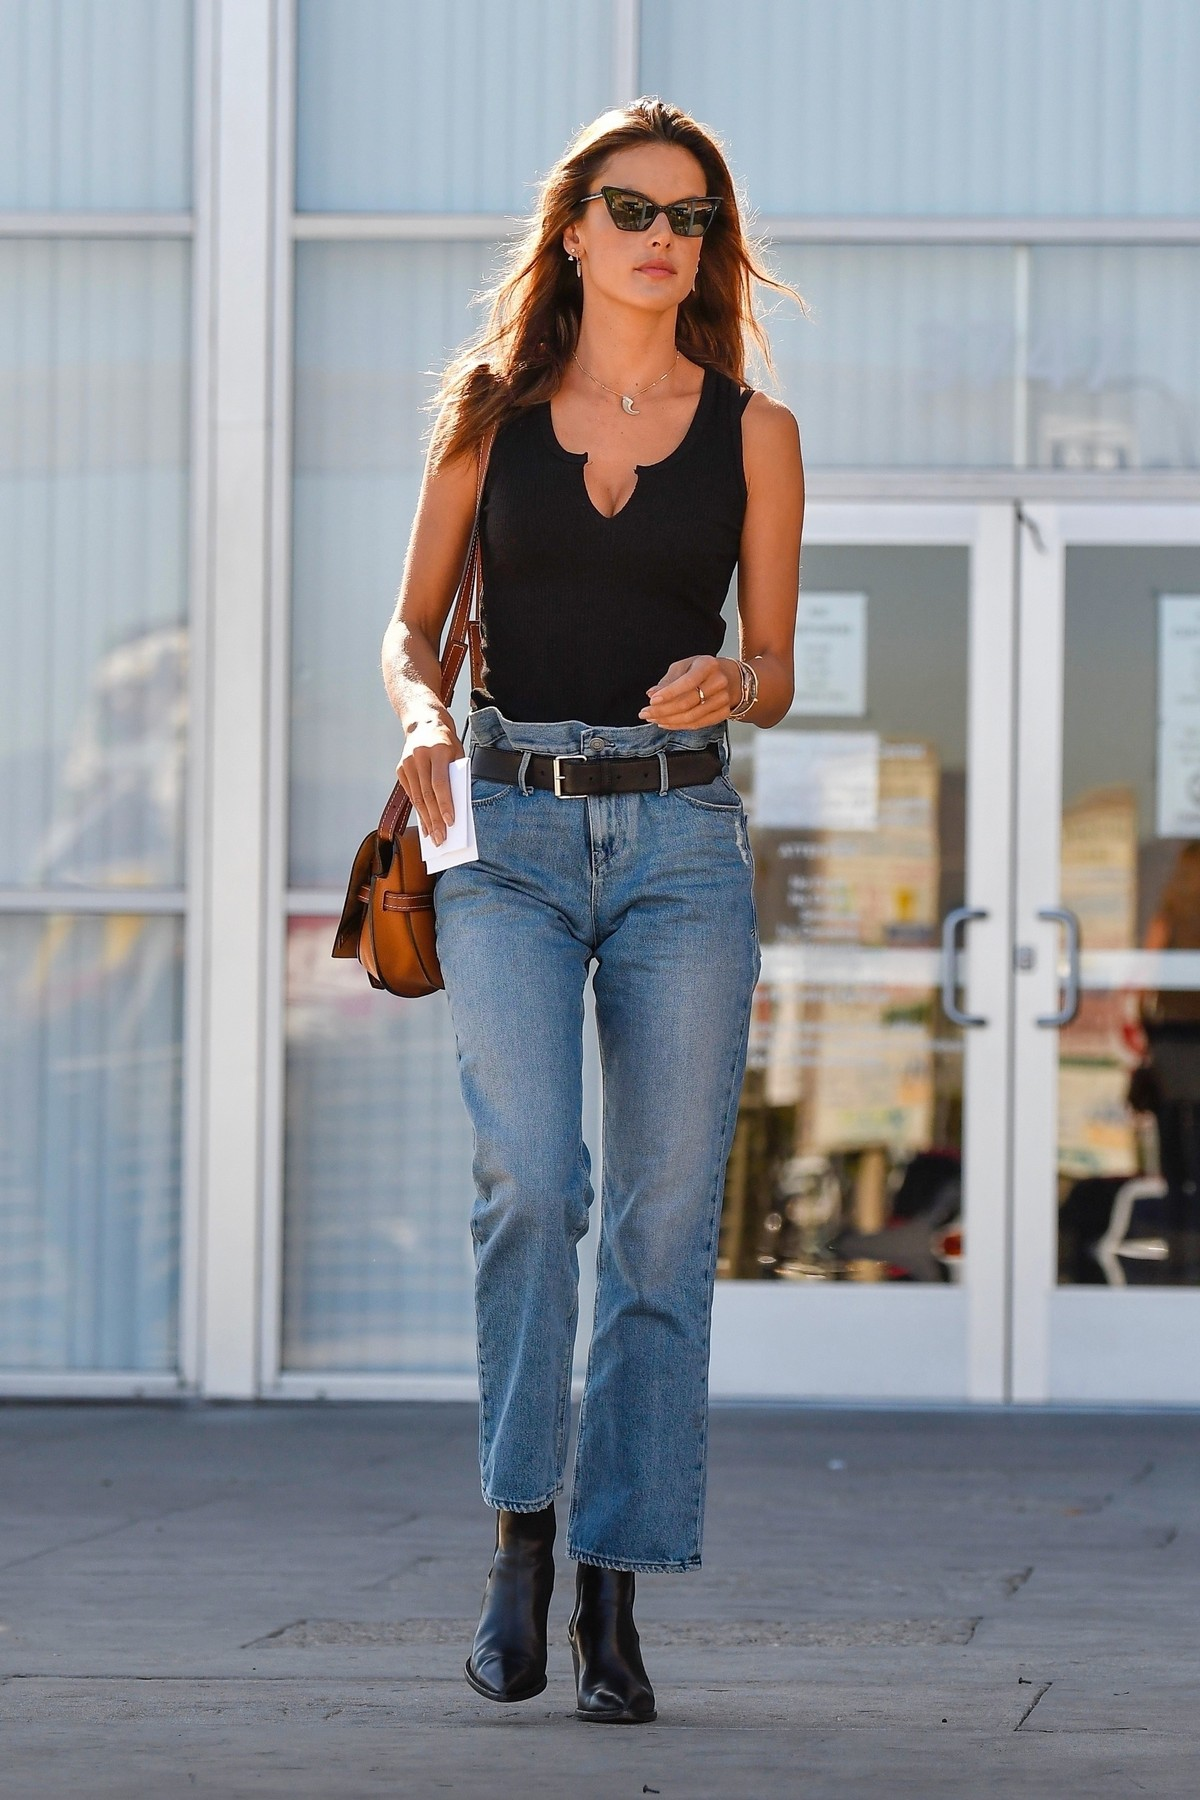 Alessandra Ambrosio in Black Top and Blue Jeans out in Los Angeles 2019/11/18 23